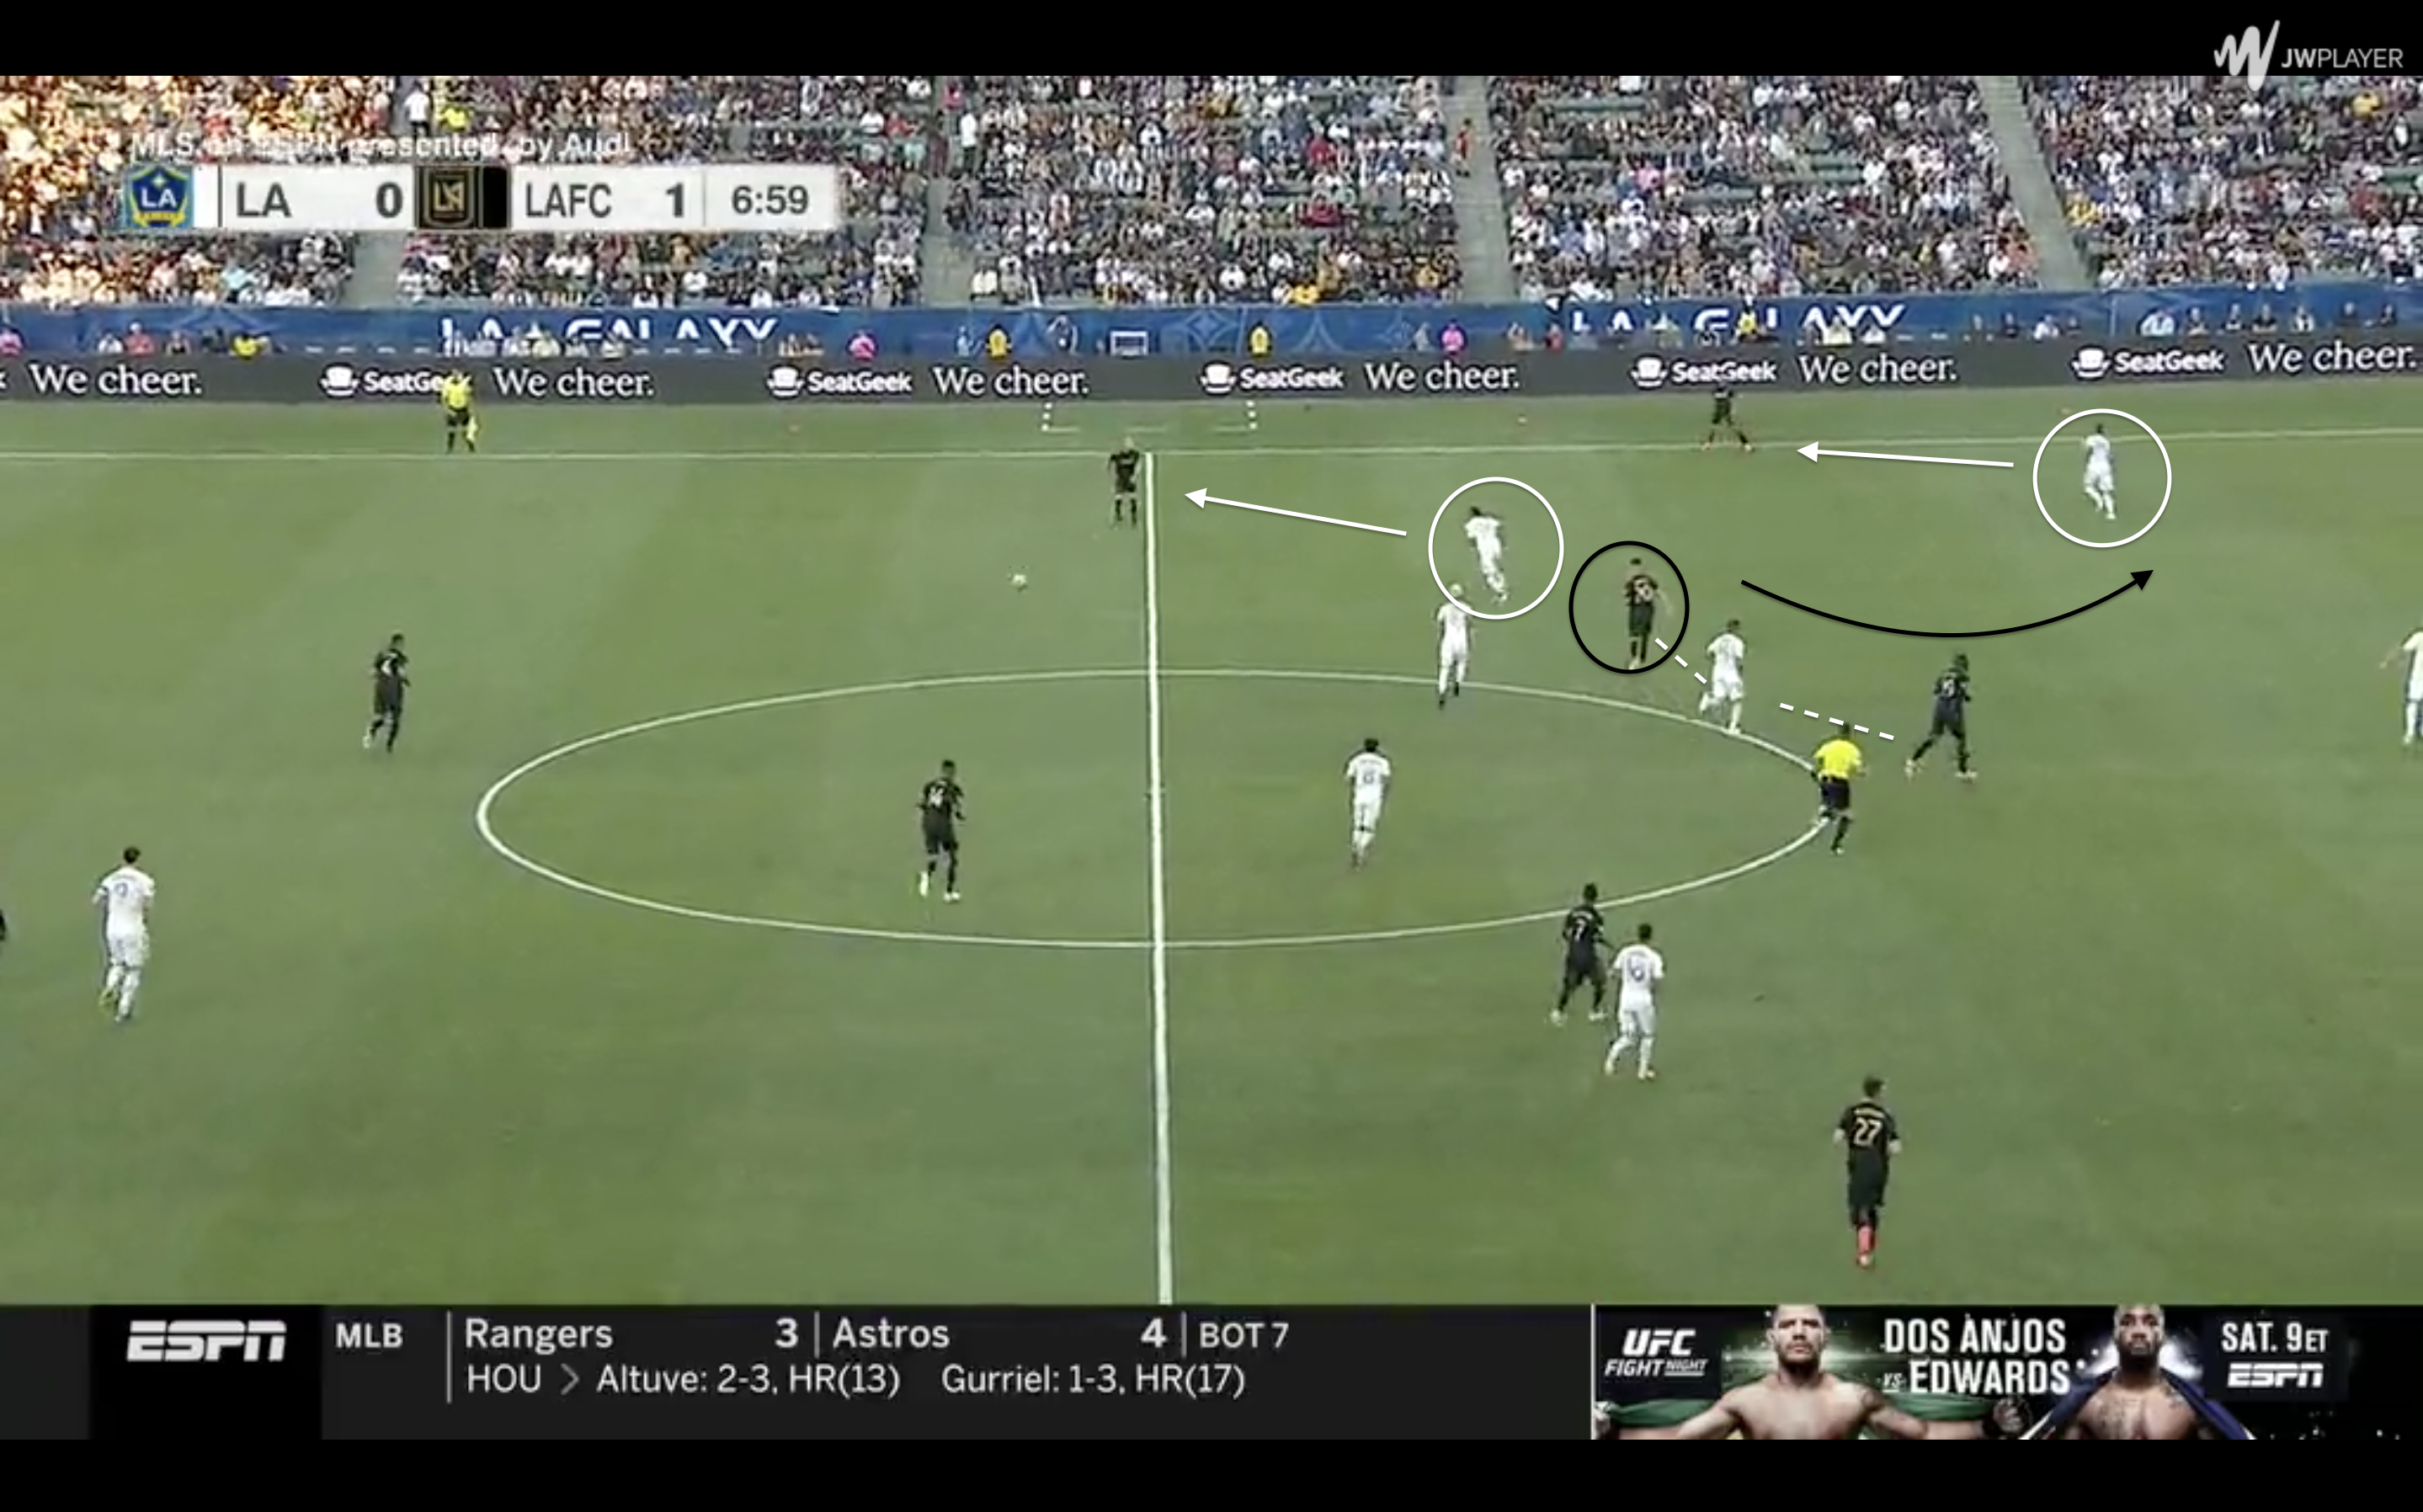 Major League Soccer 2018/19: Los Angeles Galaxy vs Los Angeles FC- tactical analysis